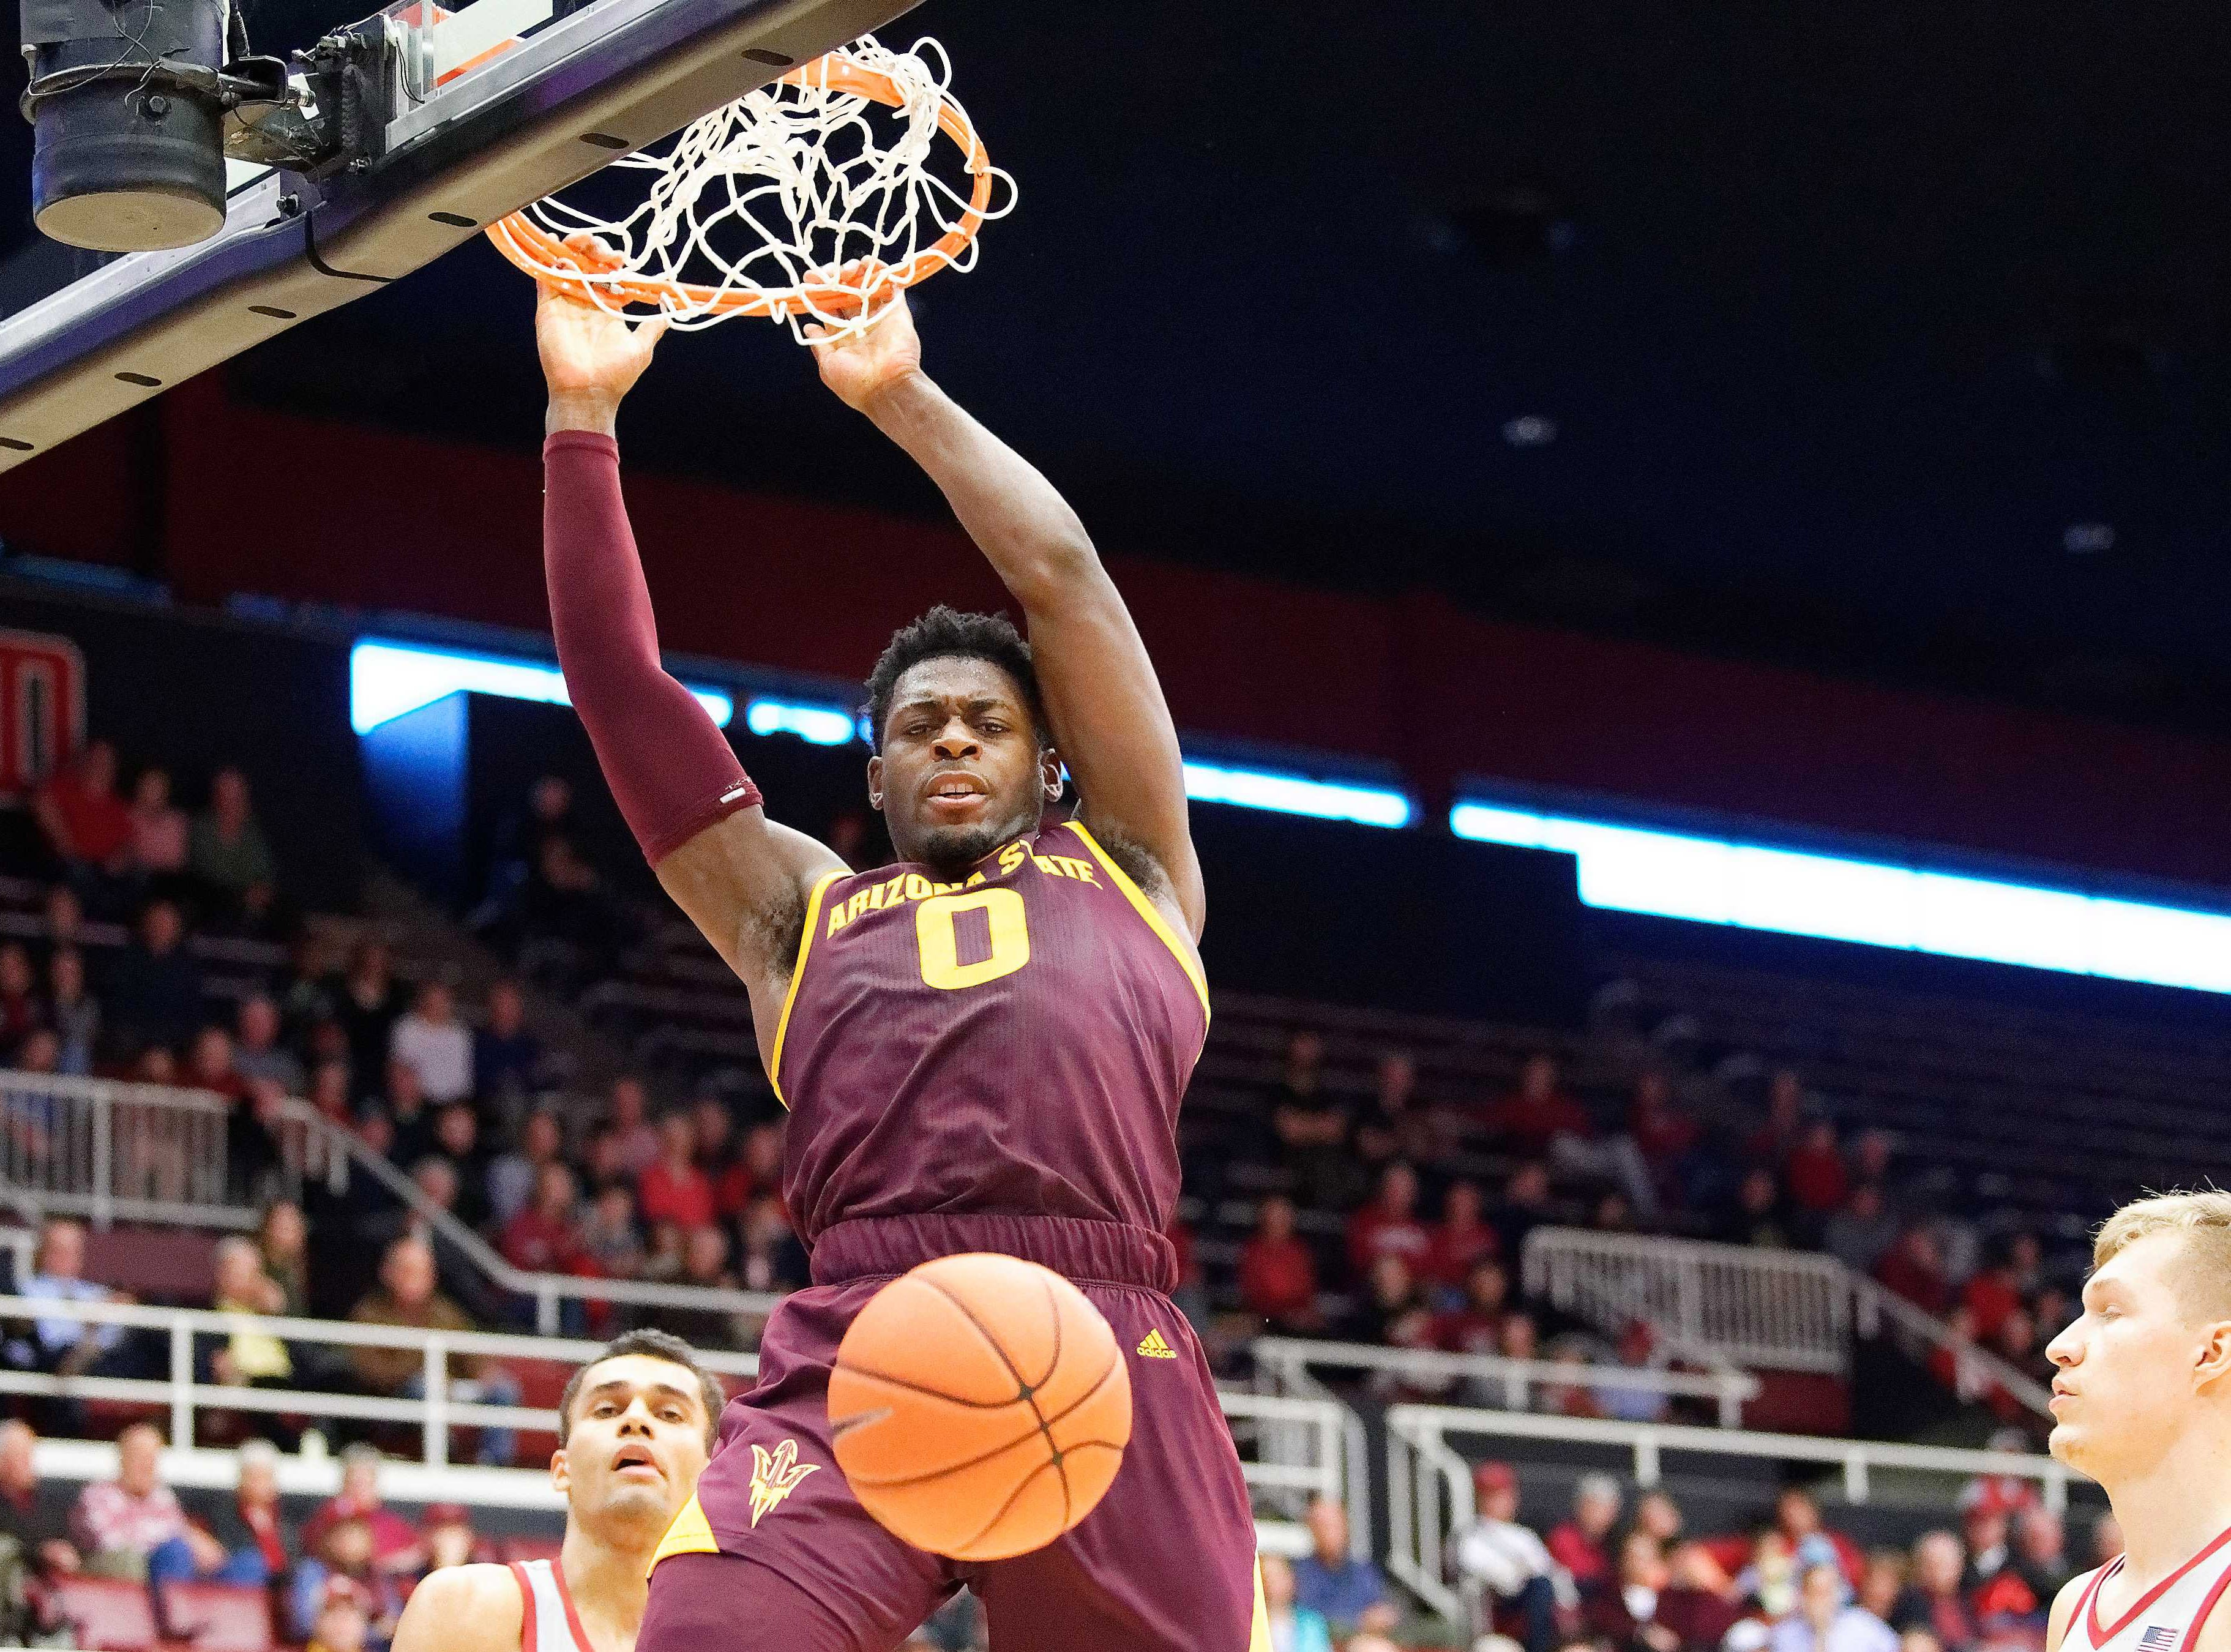 Jan. 12: Arizona State Sun Devils guard Luguentz Dort (0) dunks the basketball in the first half against the Stanford Cardinal at Maples Pavilion.